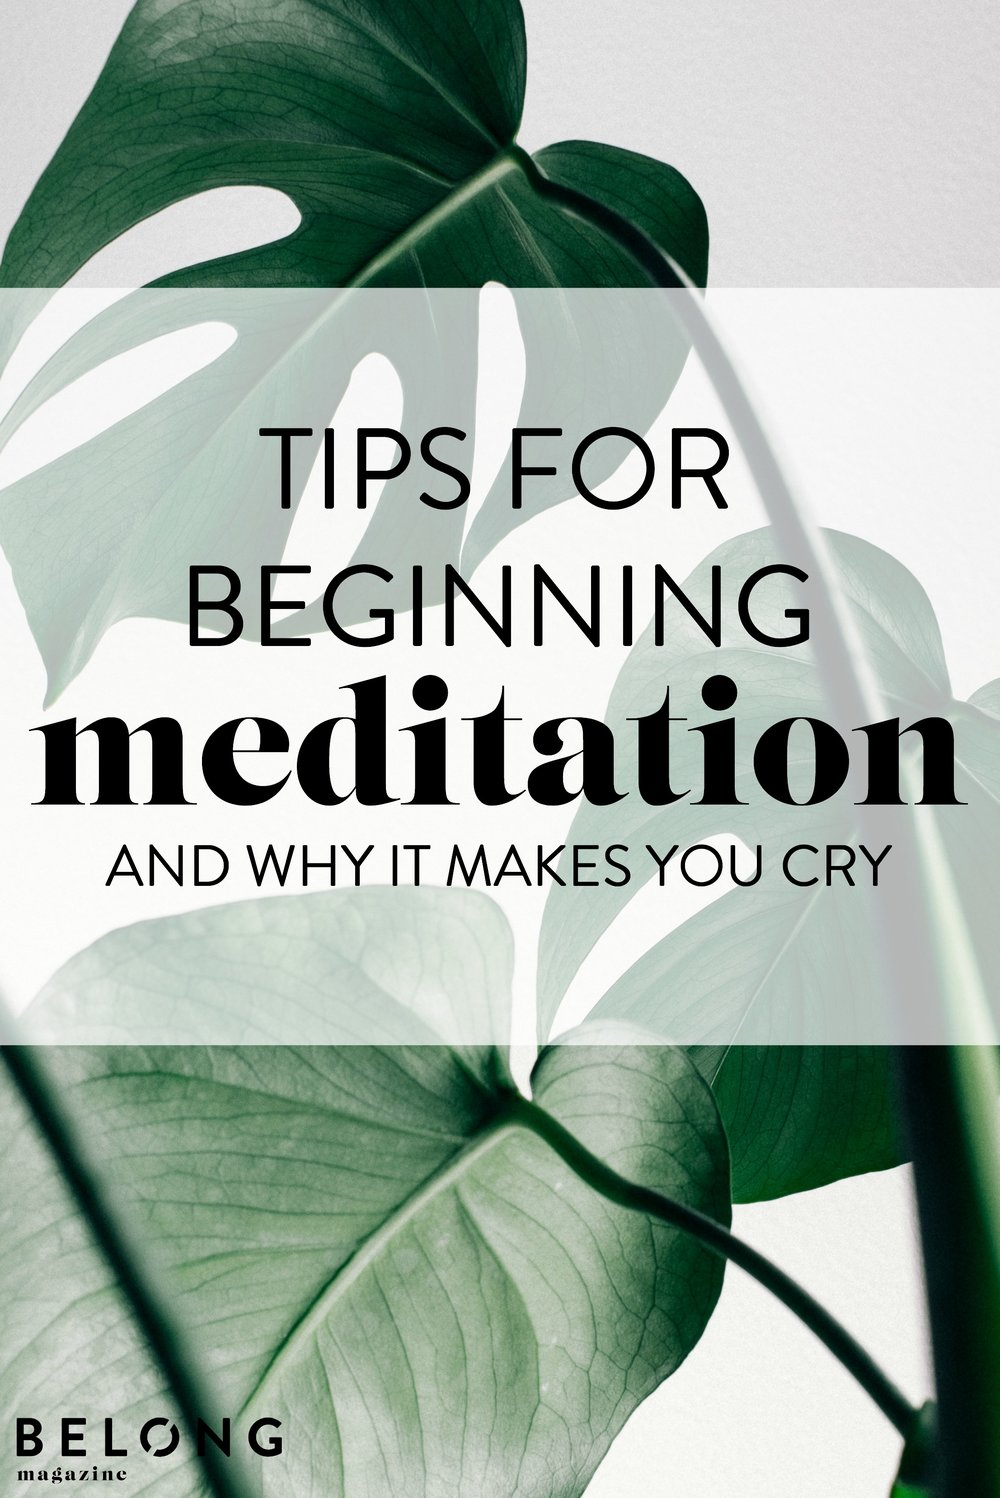 tips for beginning meditation and why it makes you cry - belong magazine blog - female entrepreneurs, creatives, bloggers